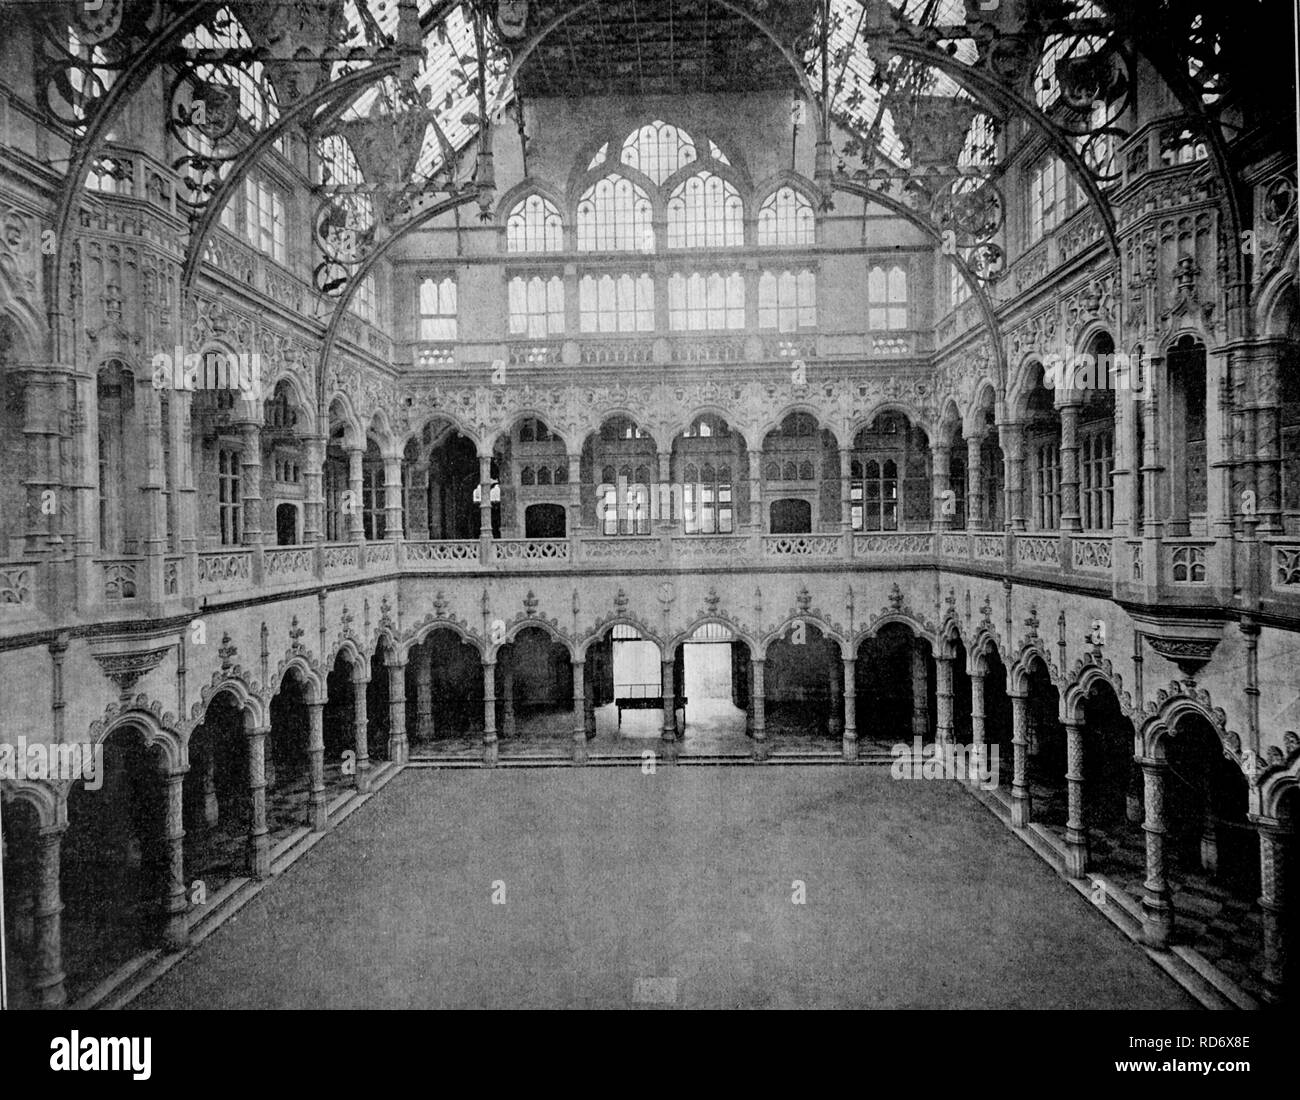 One of the first autotype photographs of the interior of the stock exchange, Bourse d'Anvers, Antwerp, Belgium, circa 1880 - Stock Image